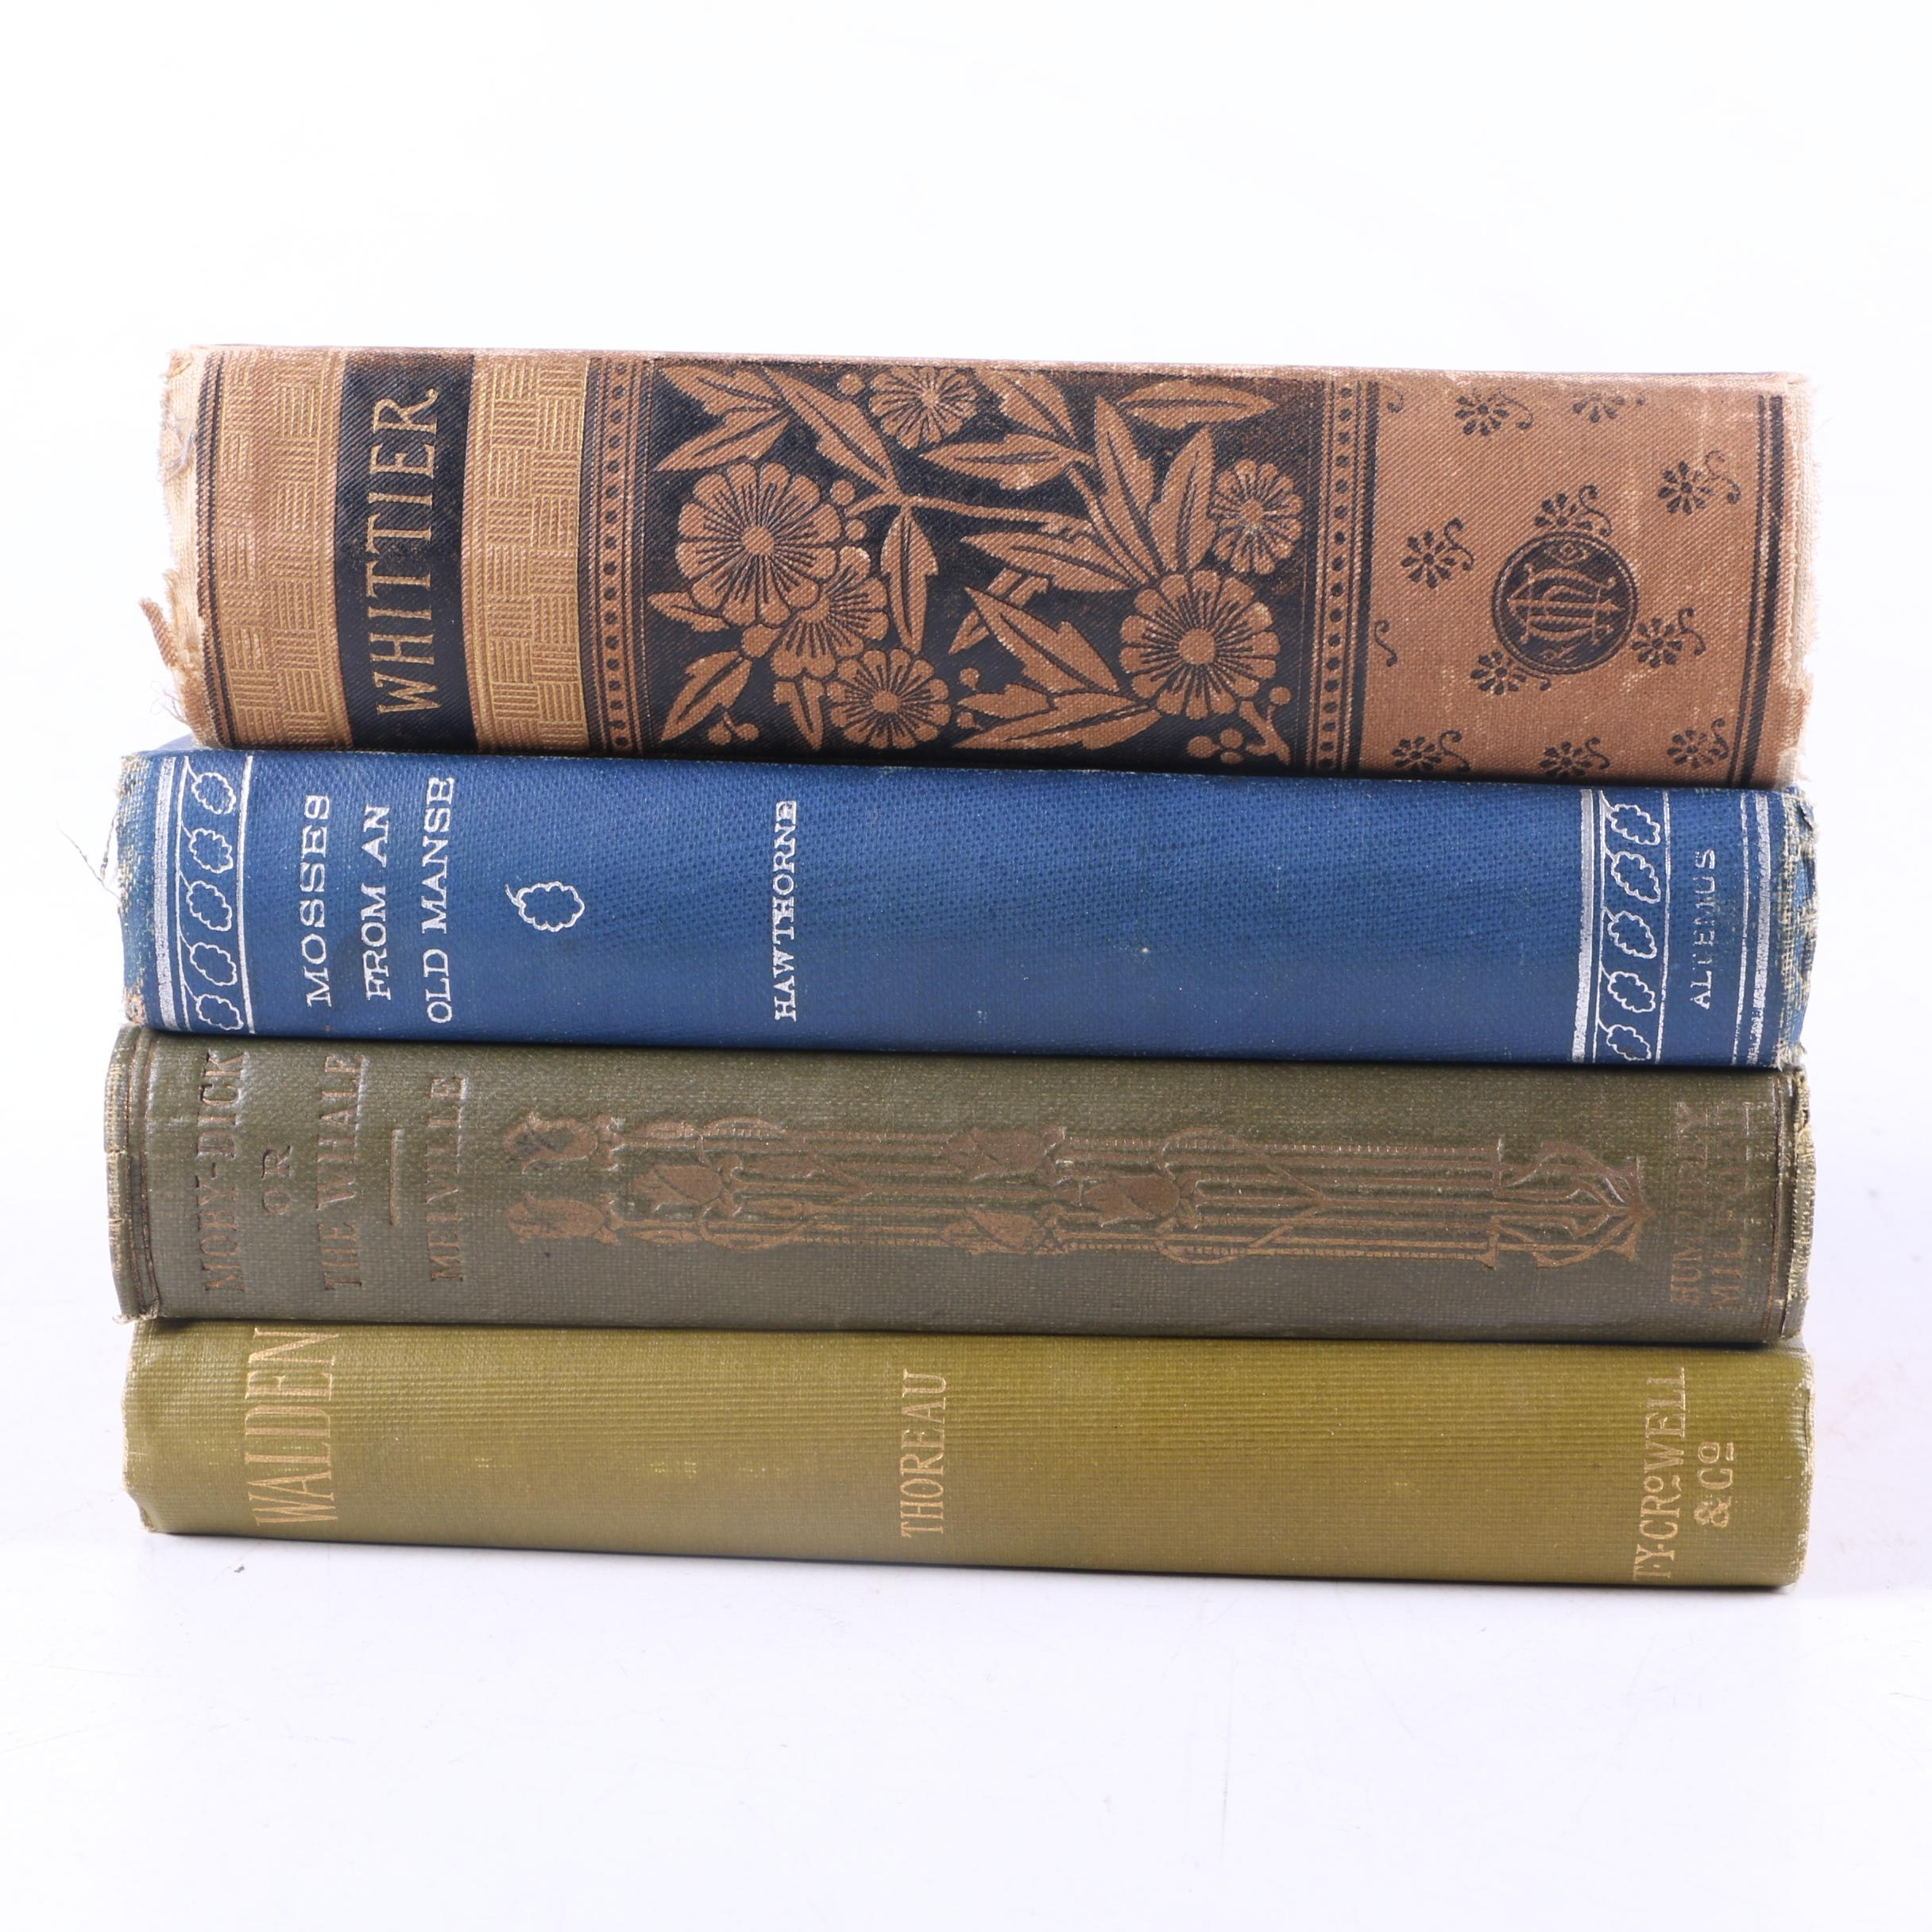 "Assortment of Antique Fiction and Poetry Including ""Walden"""